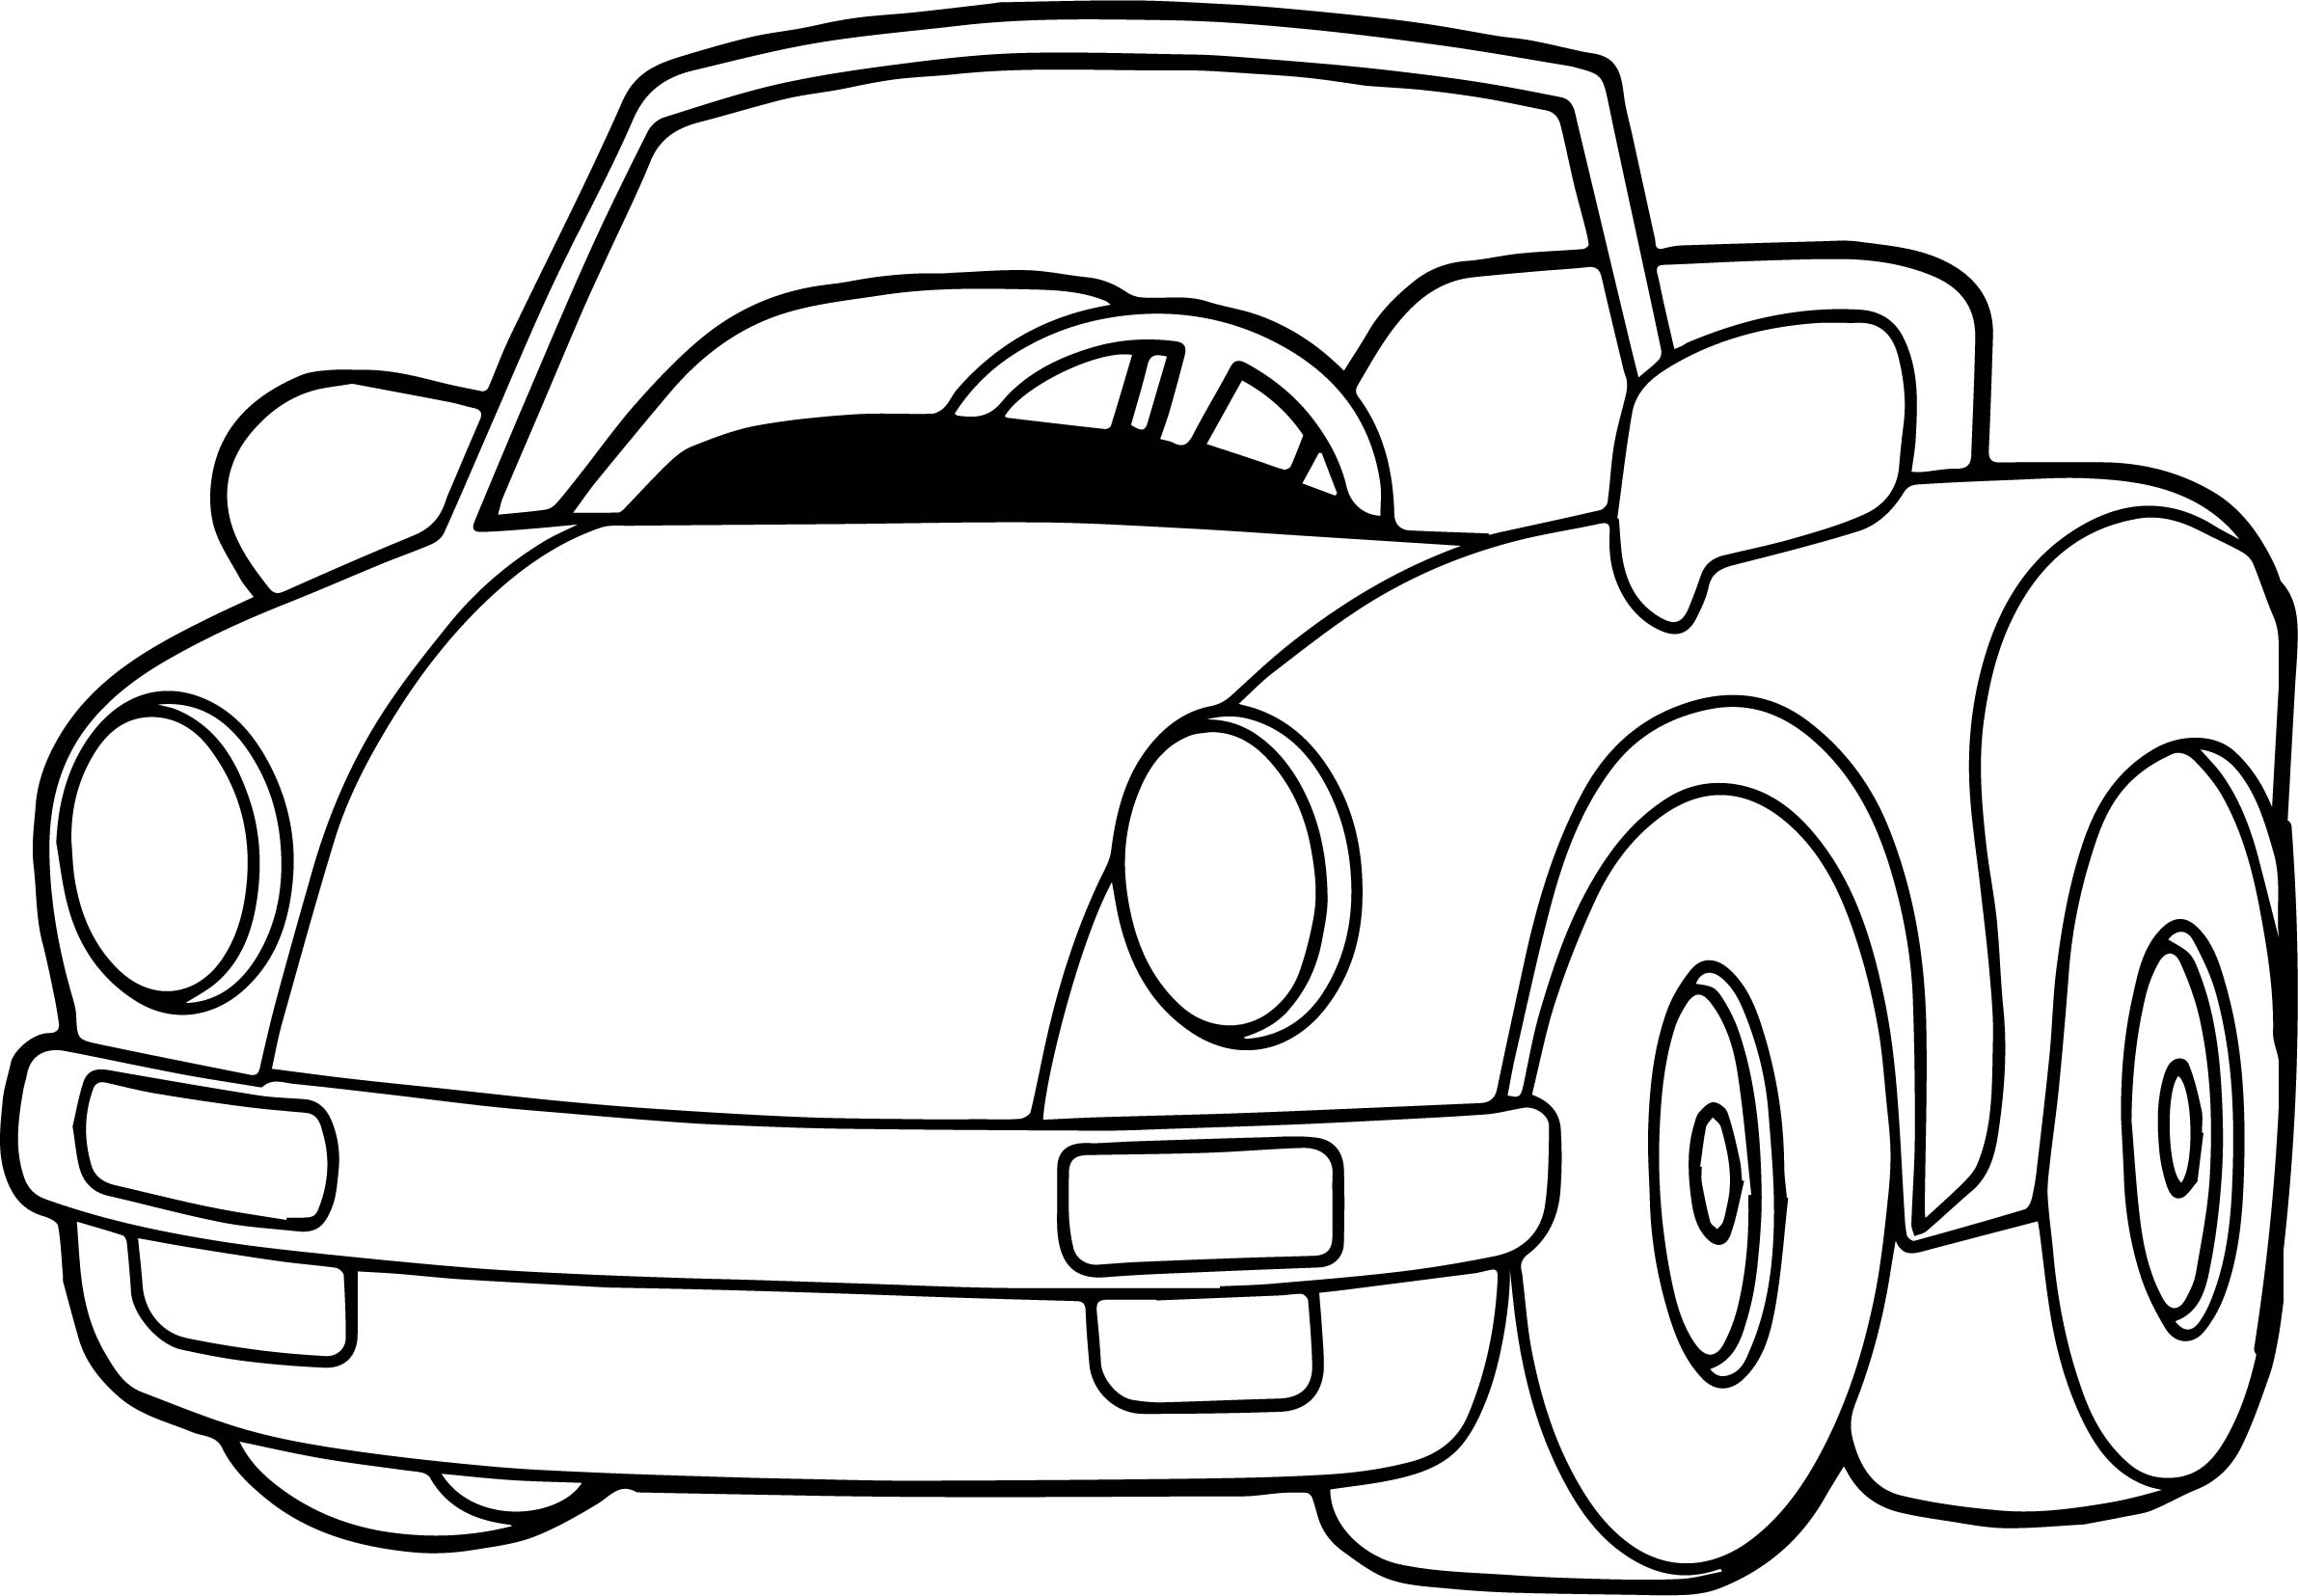 coloring pages toys - speed toy car coloring page